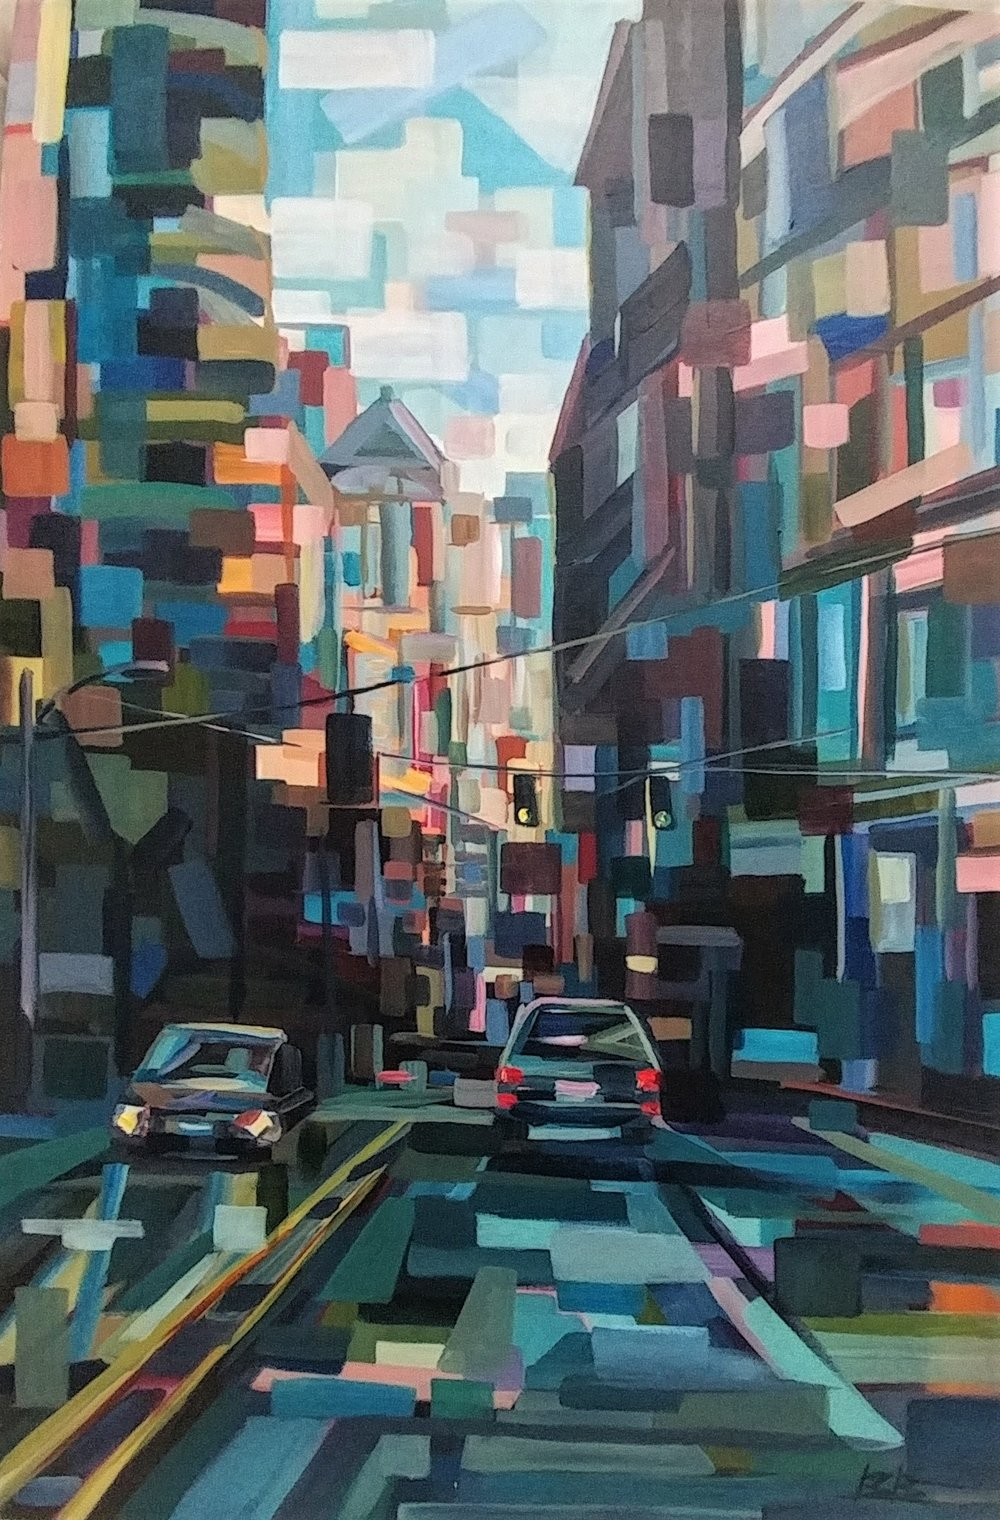 Down 1st Avenue#Acrylic on canvas#24 x 36 inches#$1,850